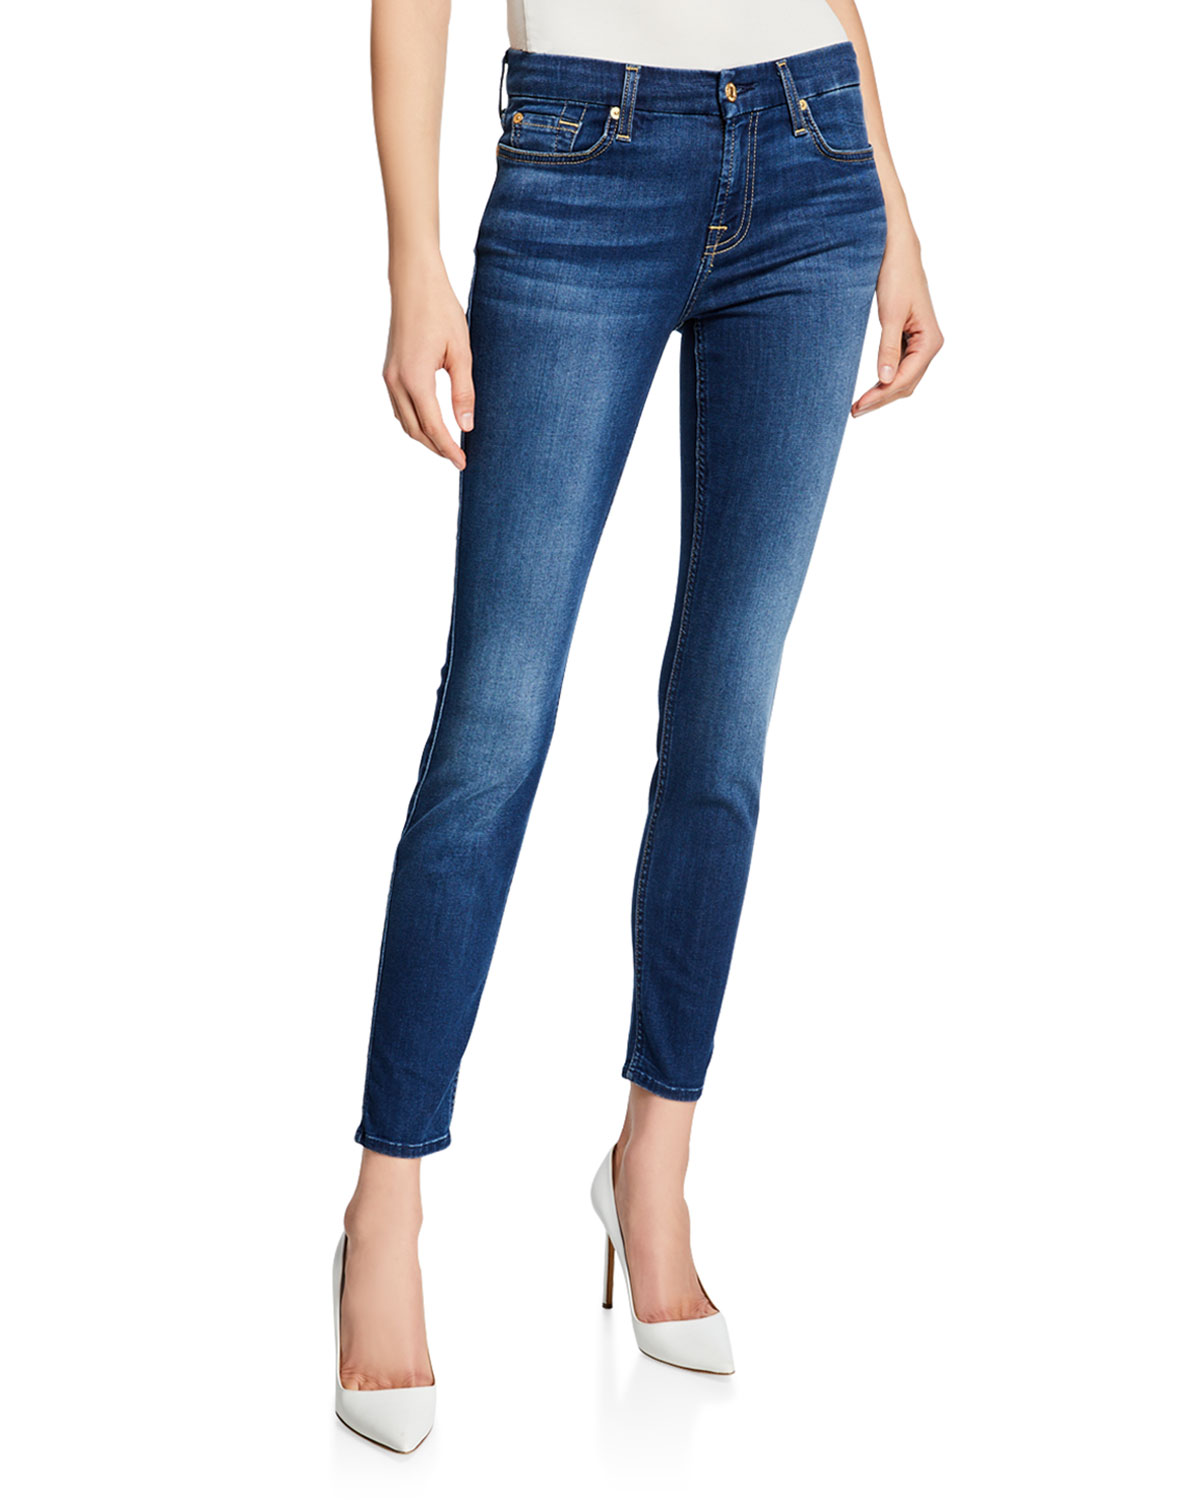 fc1784e84e37 7 for all mankind The Ankle Skinny Jeans